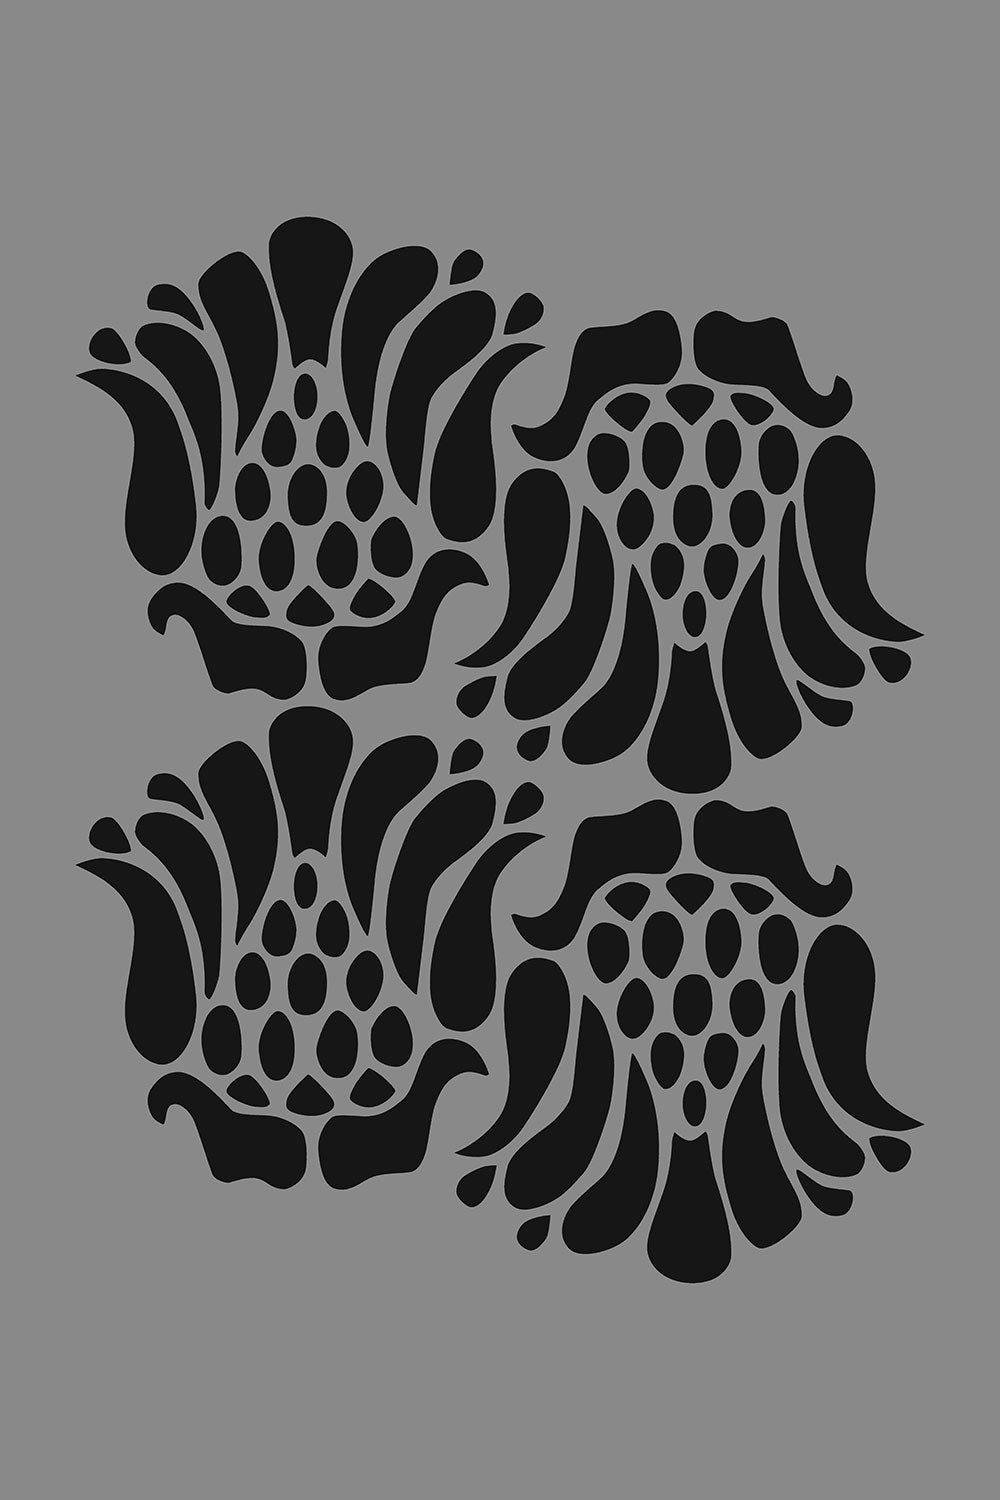 The School of Making Marie Stencil Floral Stencil Design for Hand-Painted Clothing Projects